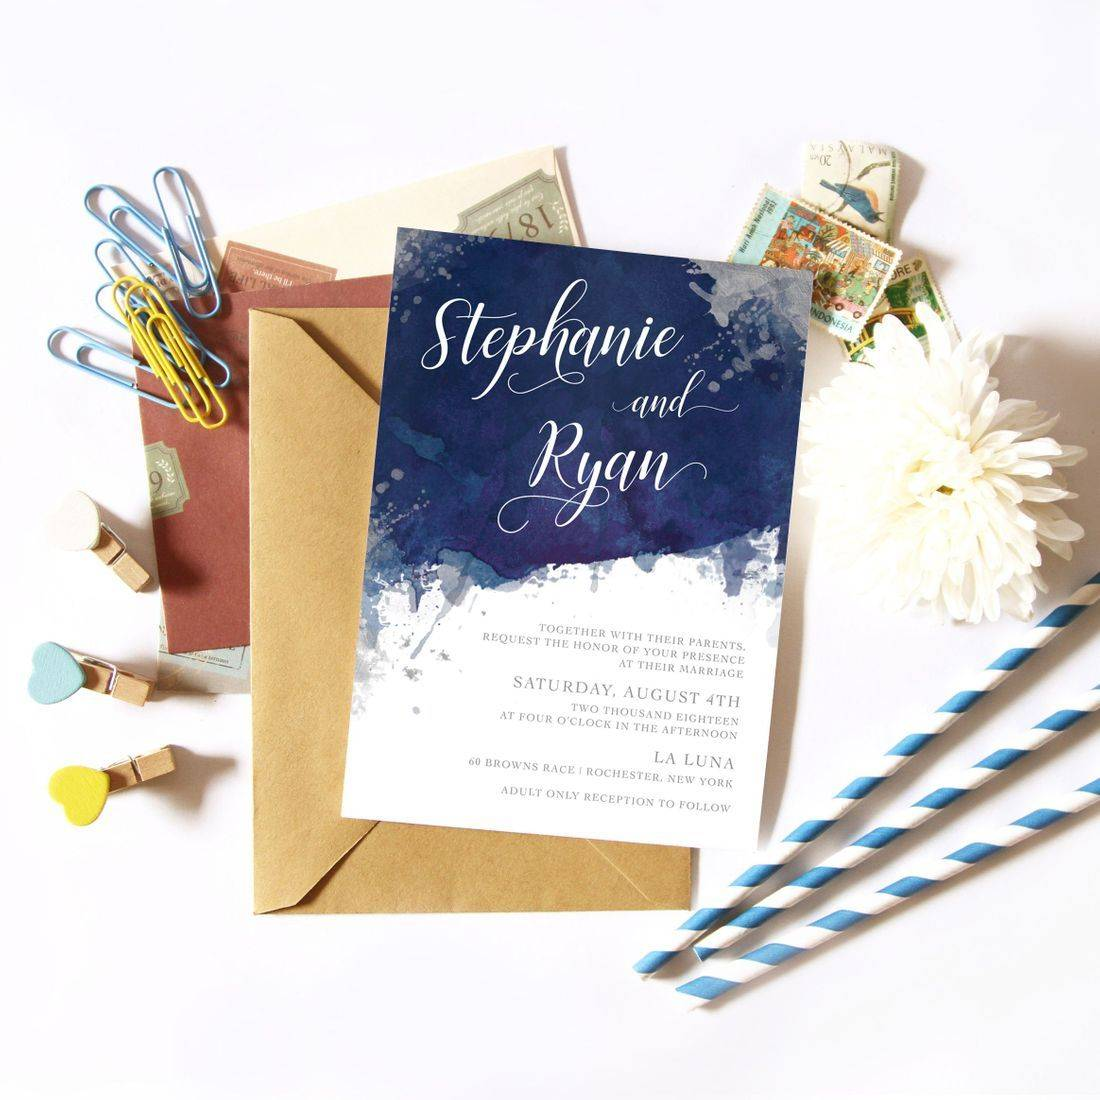 Paint splatter invitation flat lay with vintage stamps and flower